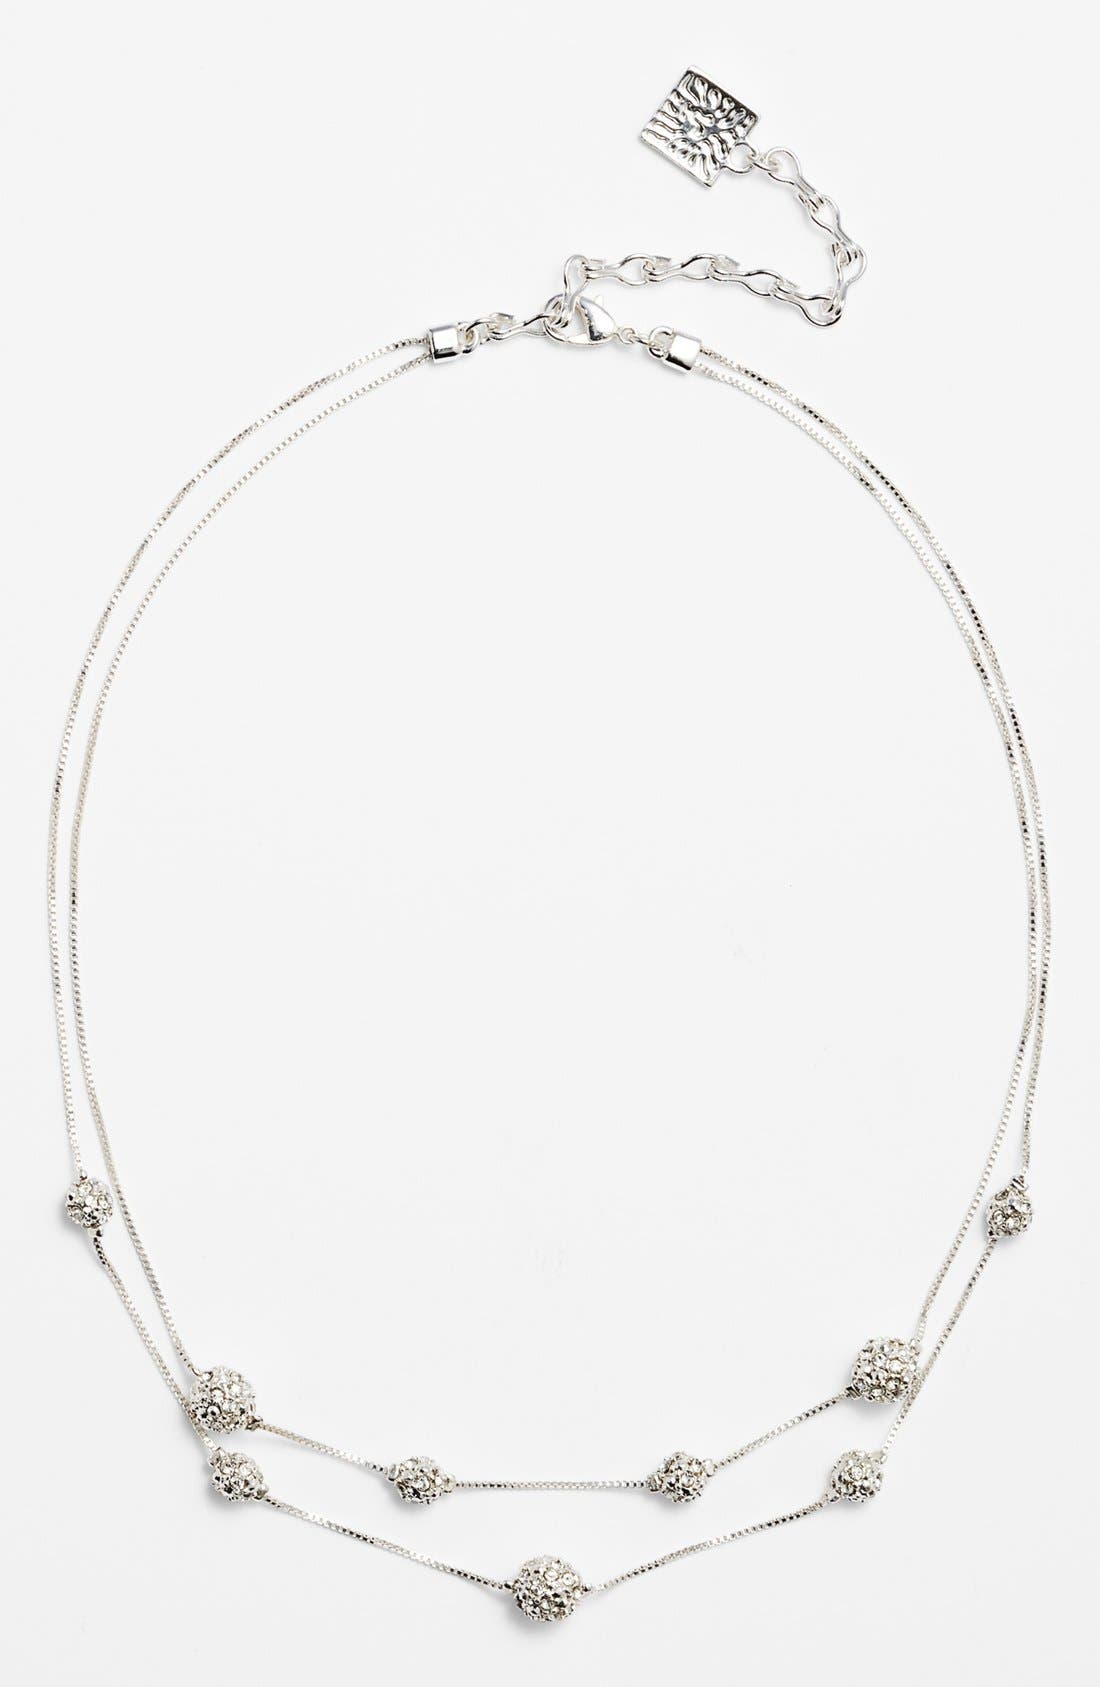 Main Image - Anne Klein Double Strand Fireball Illusion Necklace